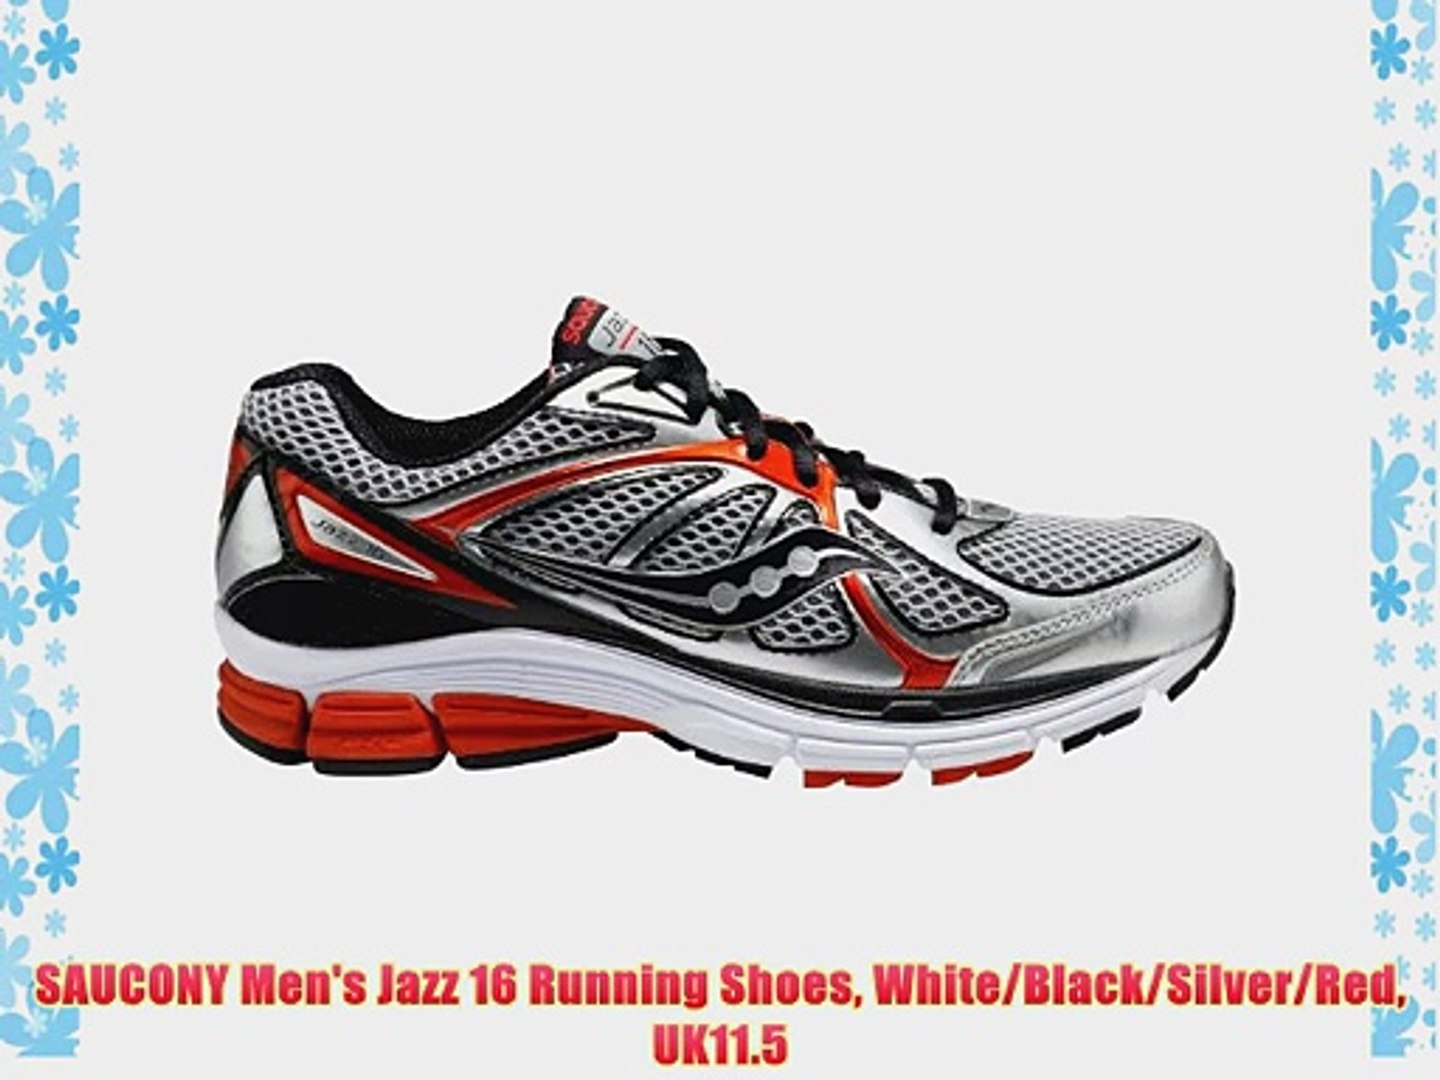 SAUCONY Men's Jazz 16 Running Shoes White/Black/Silver/Red UK11.5